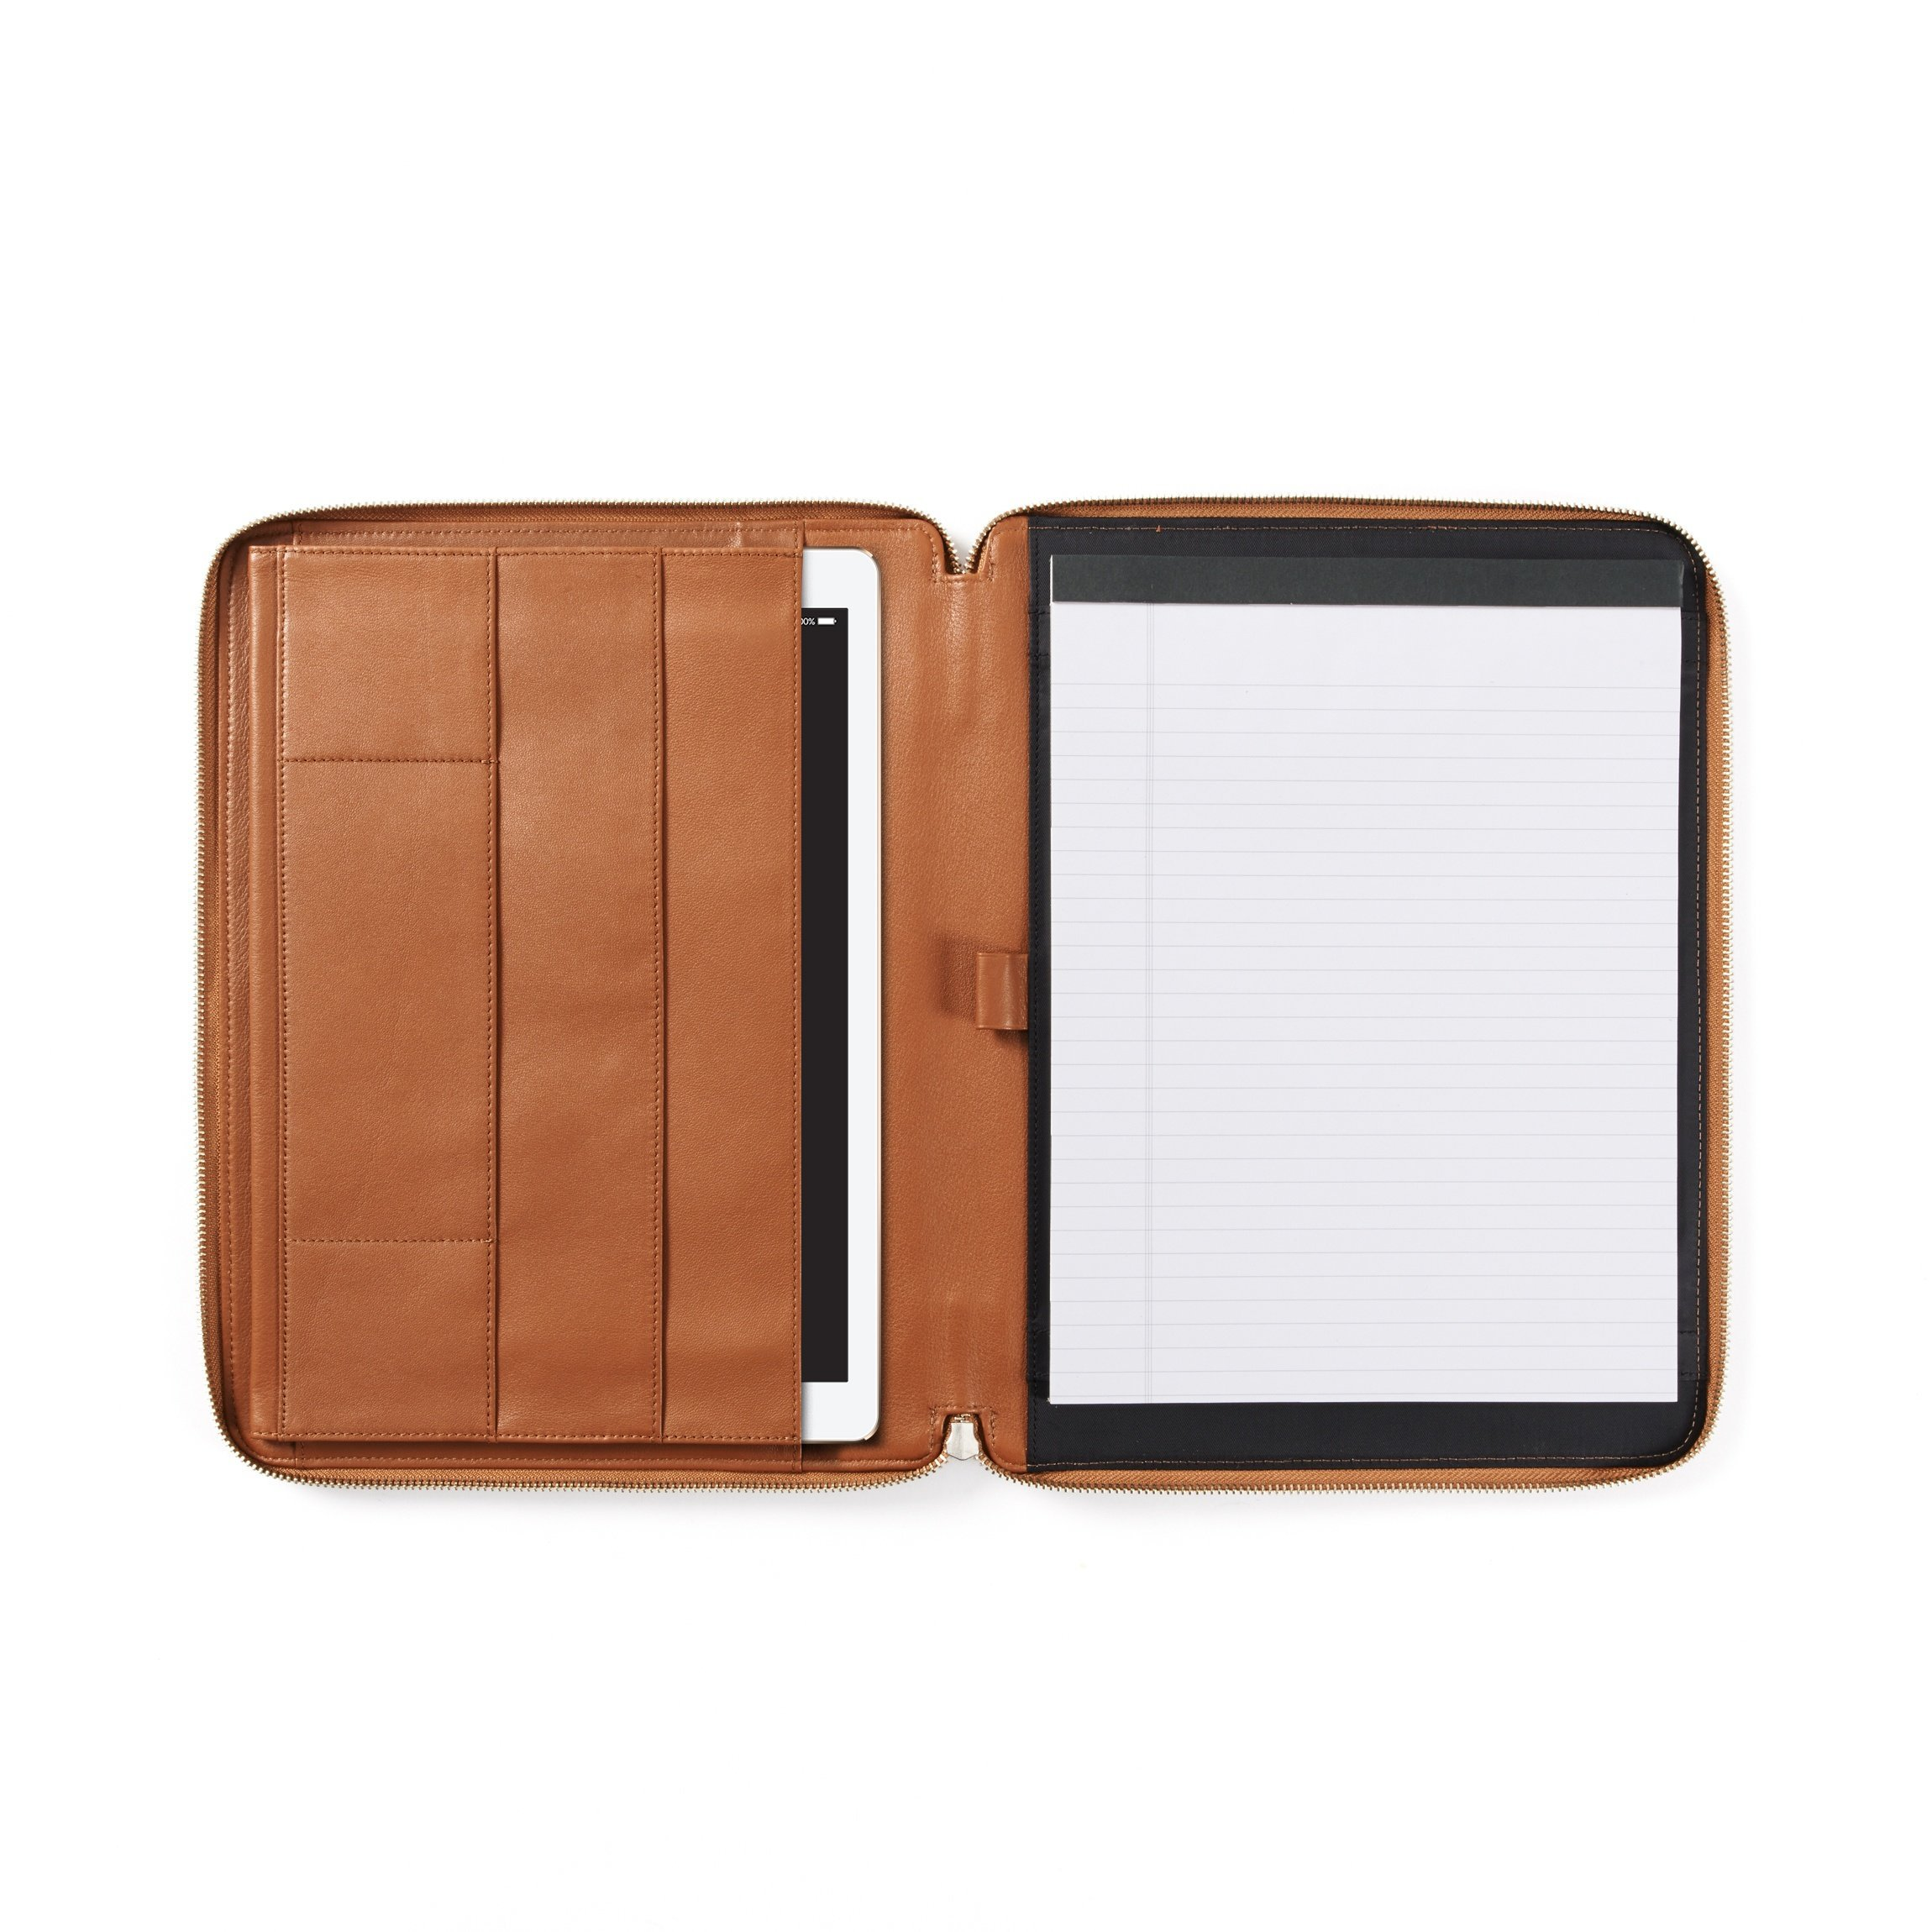 12.9 Inch Ipad Pro Portfolio - Full Grain Leather - Cognac (brown)